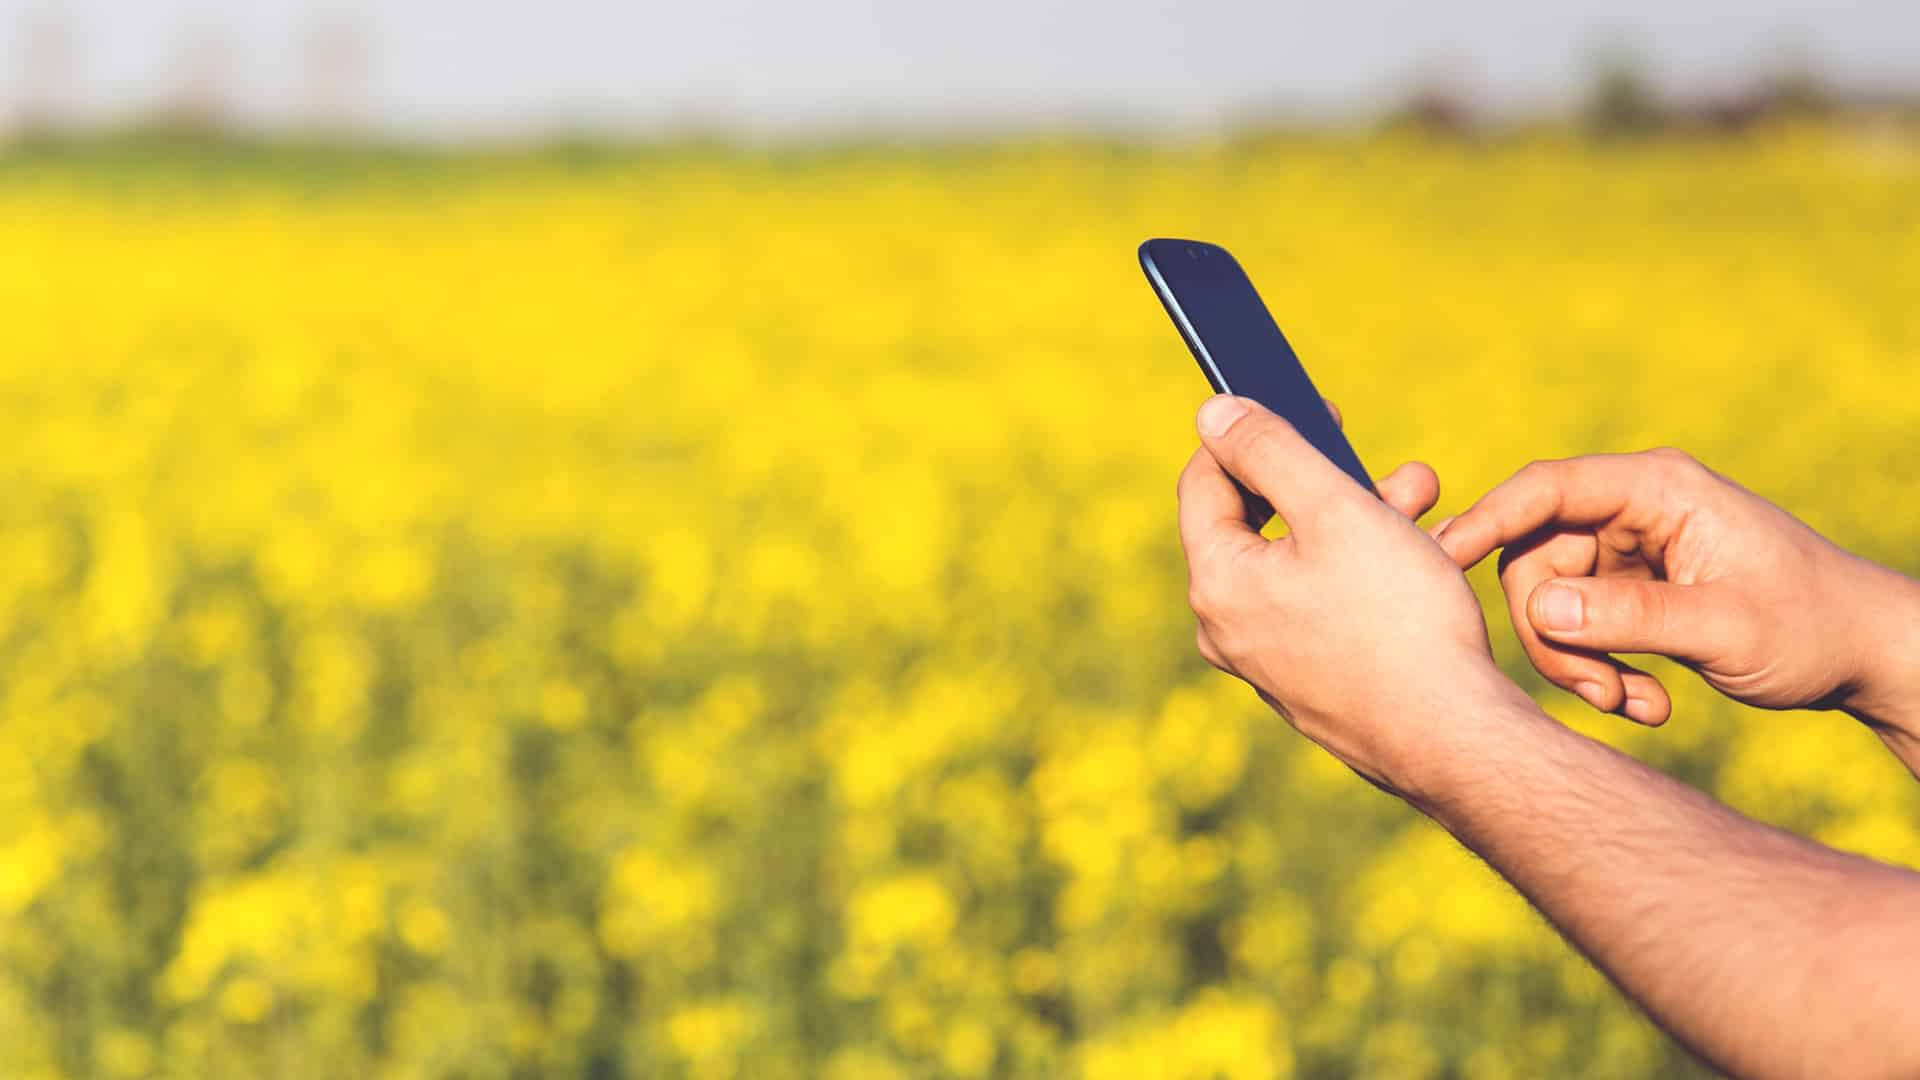 SLCM launches mobile app 'AgriReach' to check quality of agri-commodities